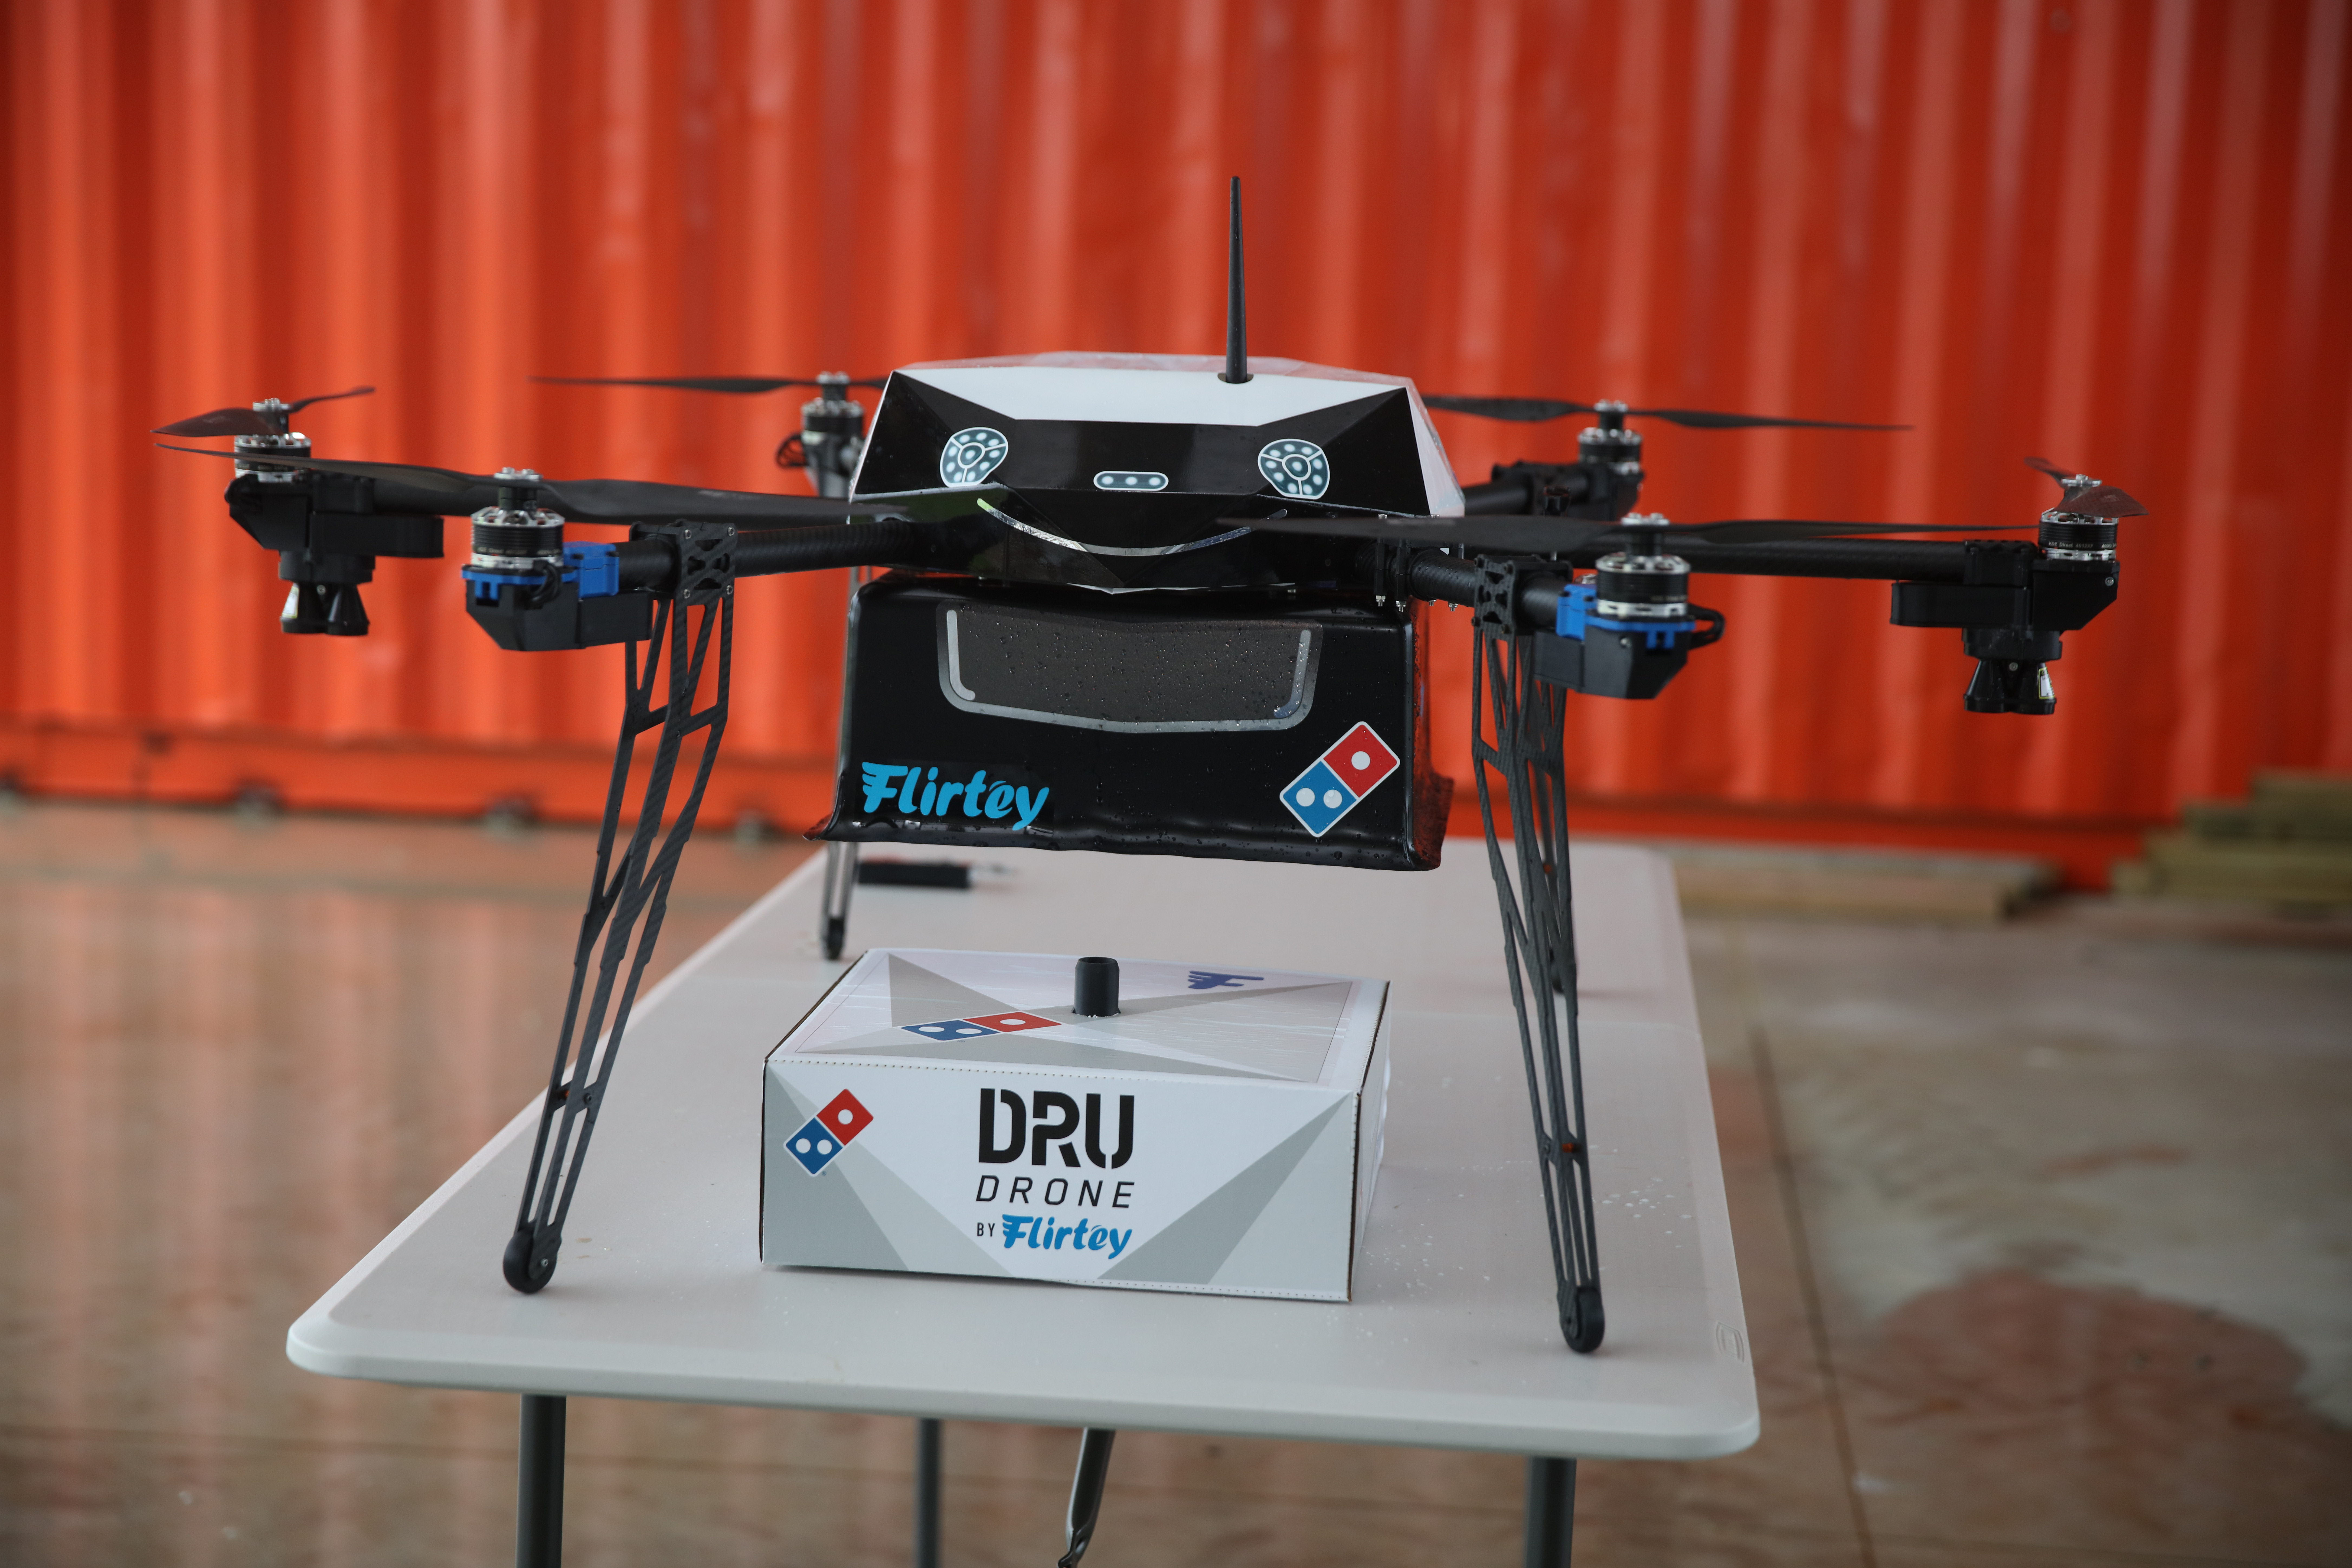 Domino's DRU DRONE could take regular flight later this year.